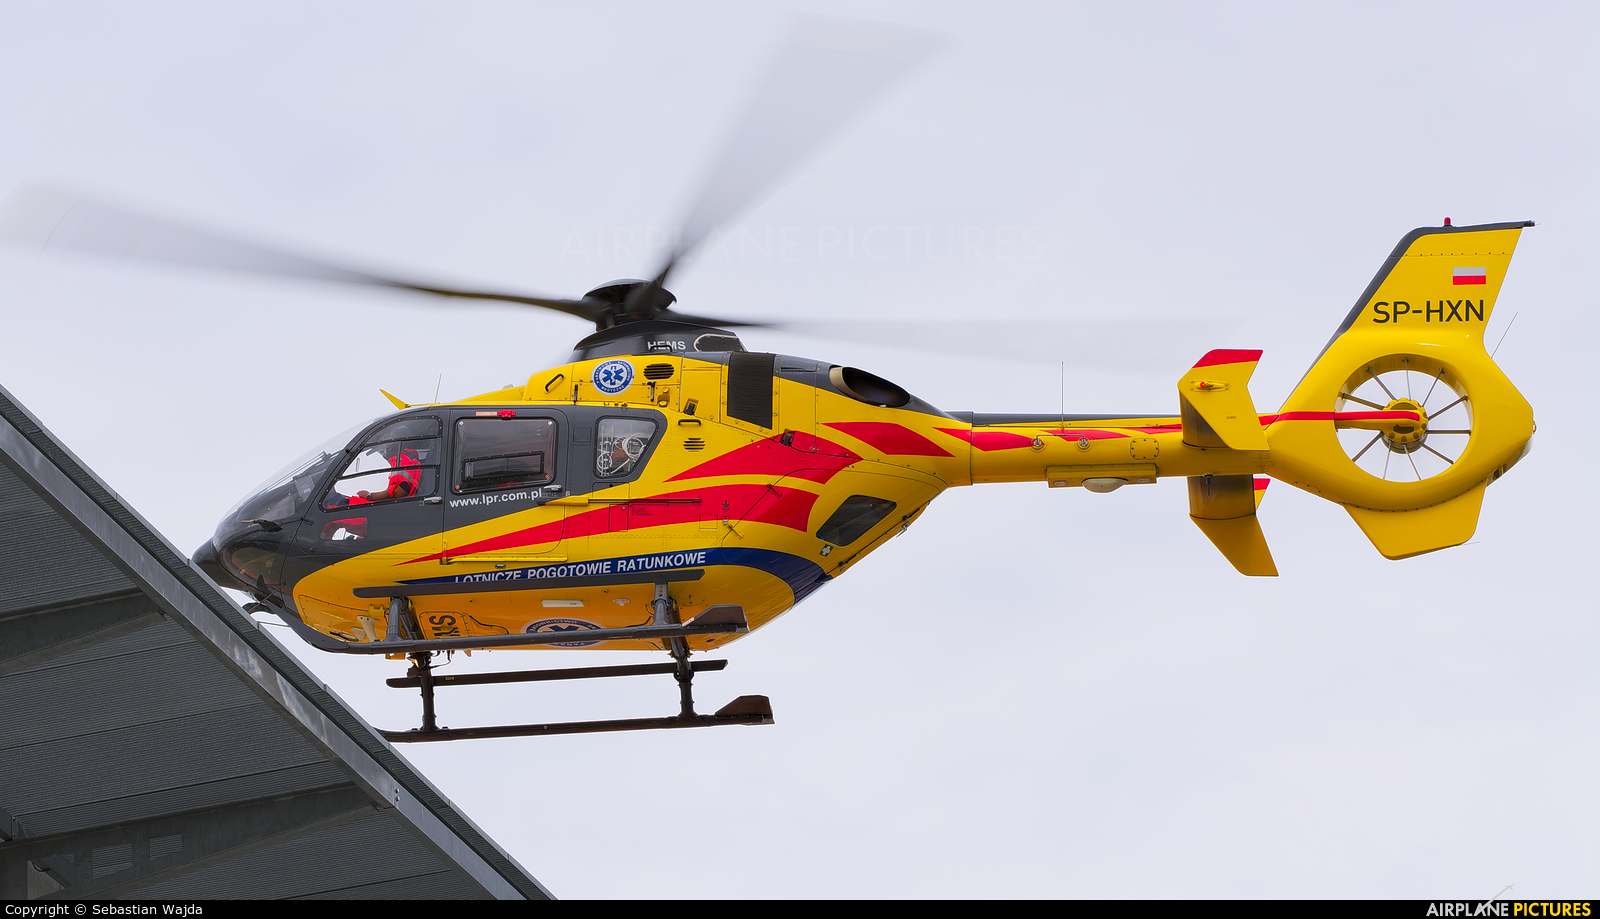 Polish Medical Air Rescue - Lotnicze Pogotowie Ratunkowe SP-HXN aircraft at Off Airport - Poland